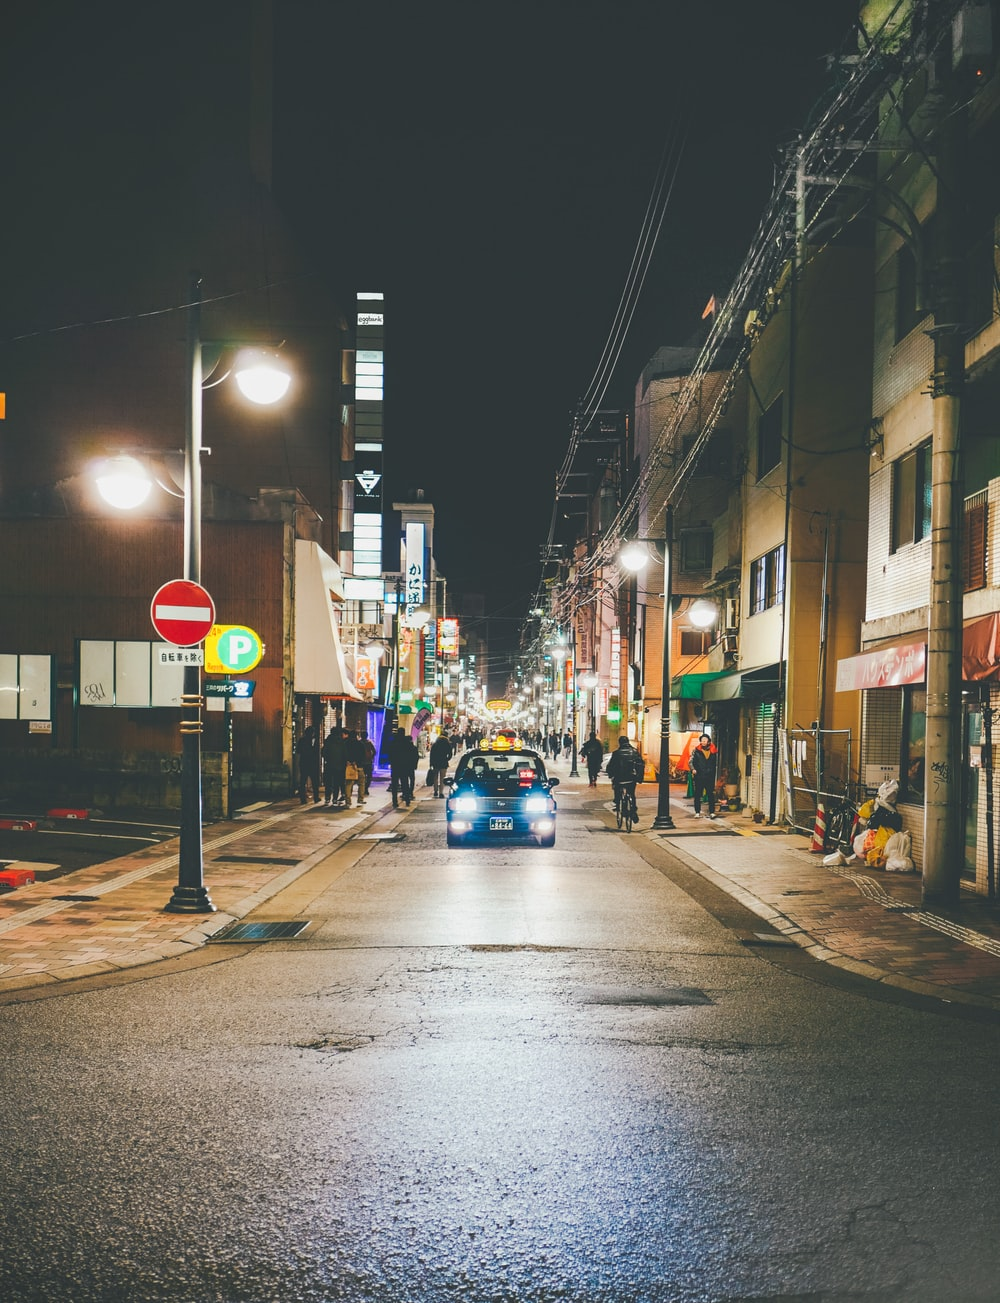 a car passing by a street in the city during nighttime